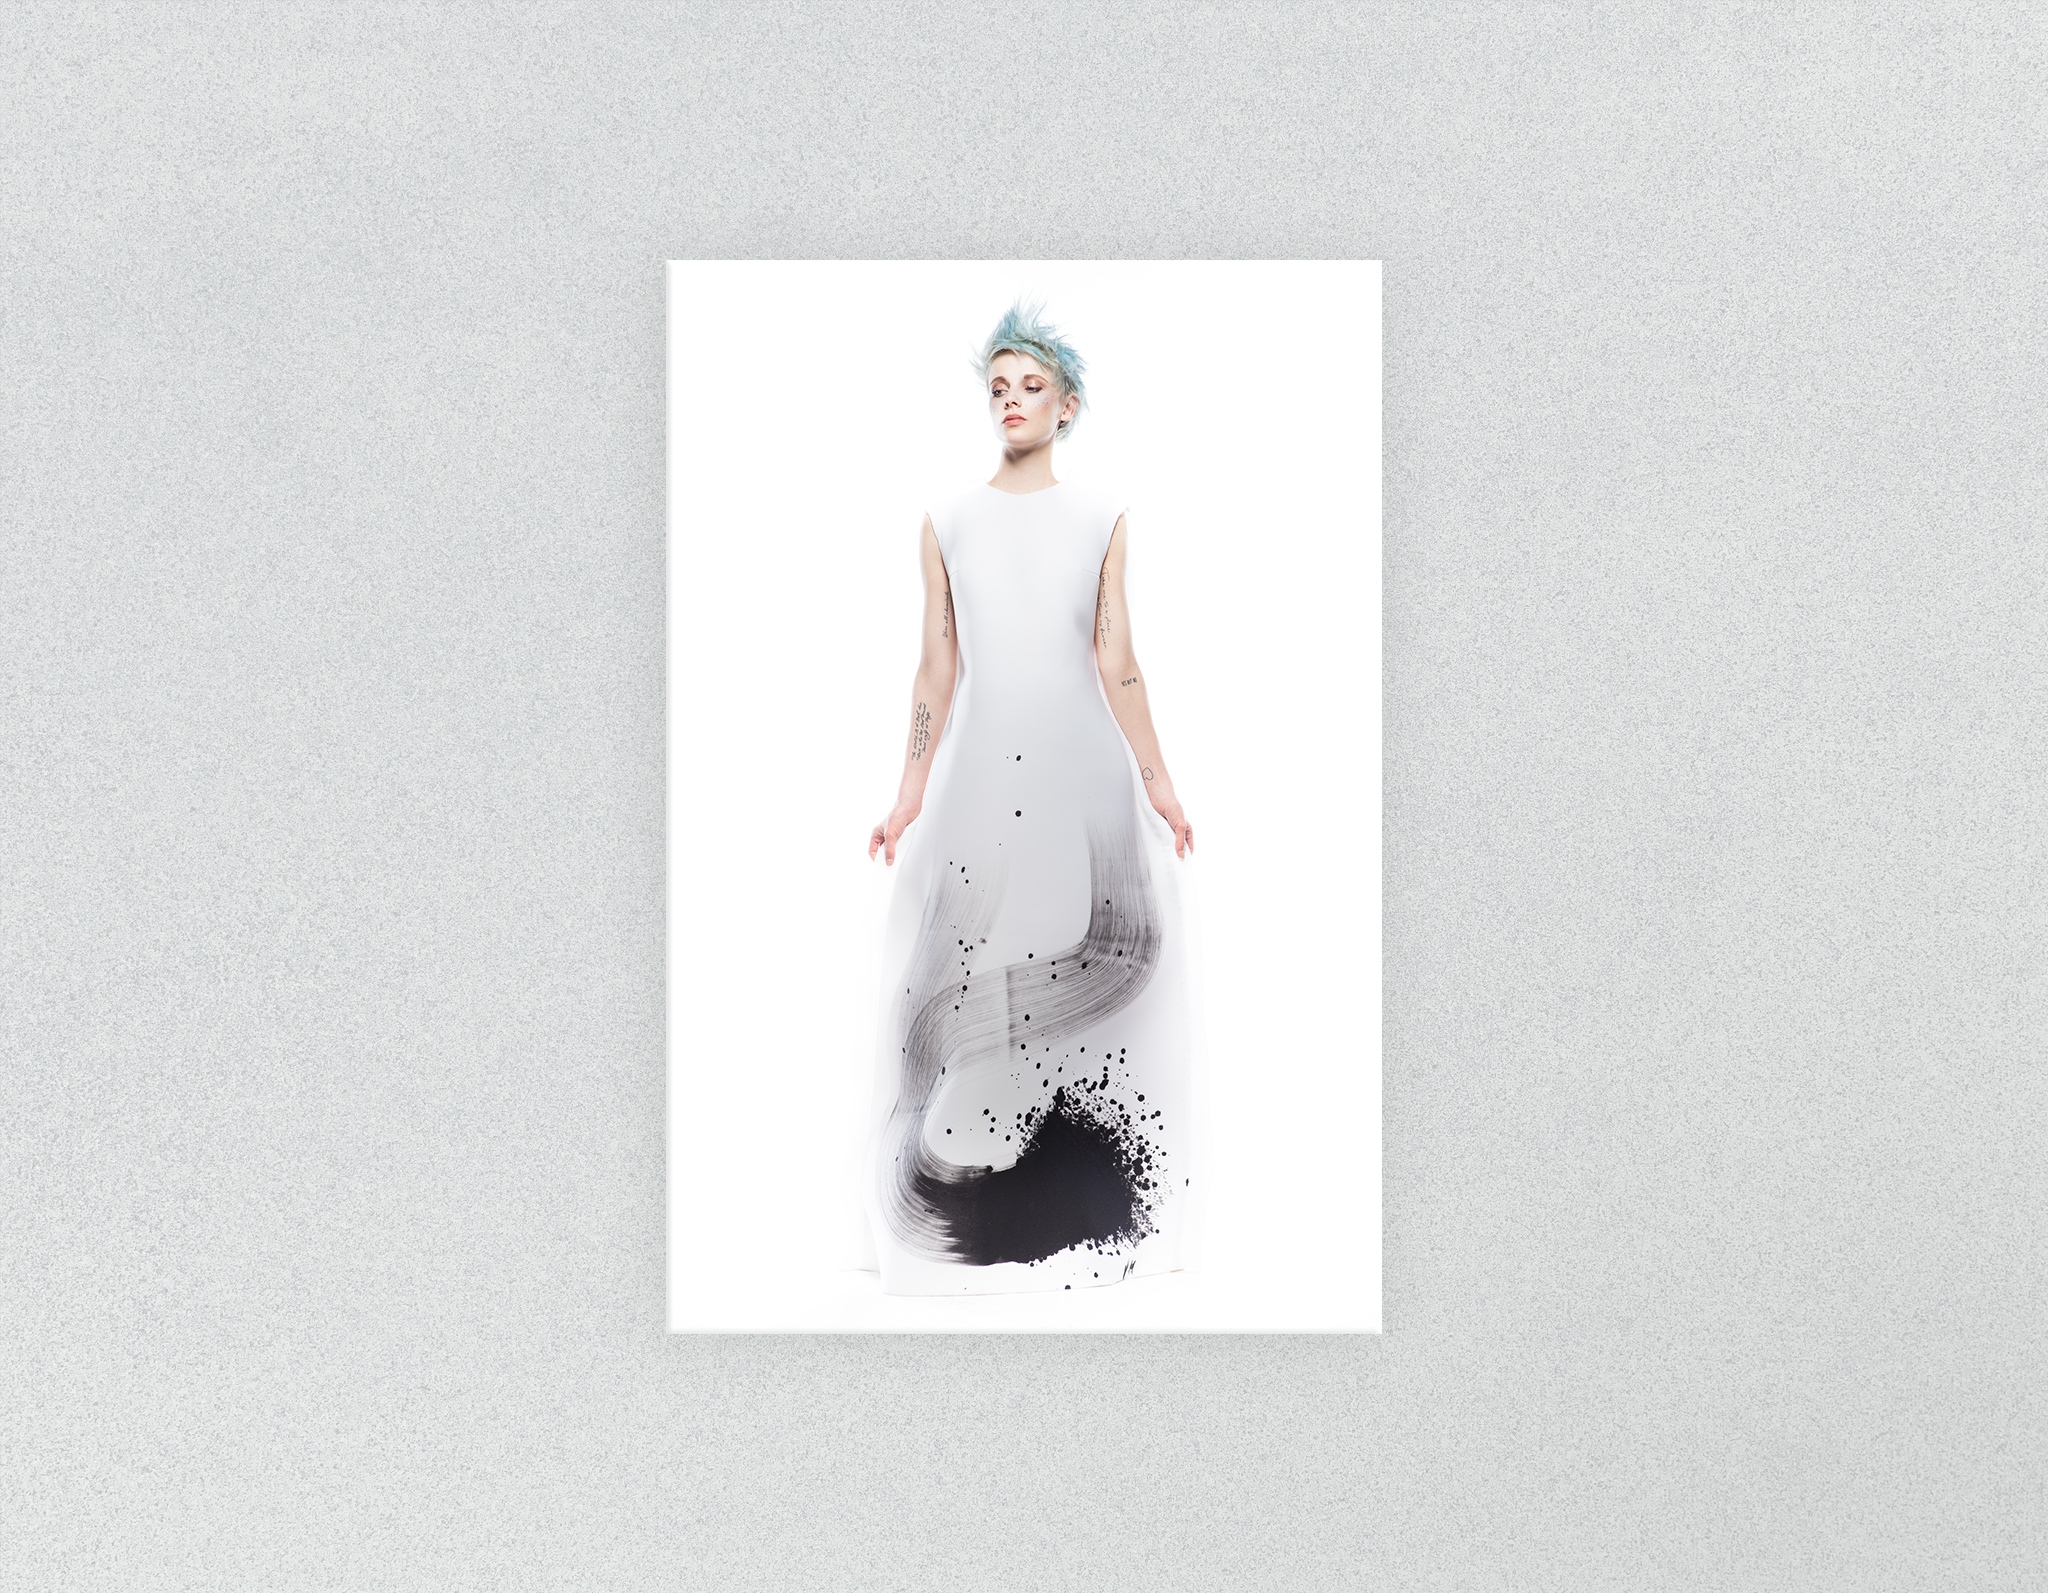 Plastic Salon Posters & Salon Posters: Woman Full Body with Blue Spiky Hair in Graphic Gown